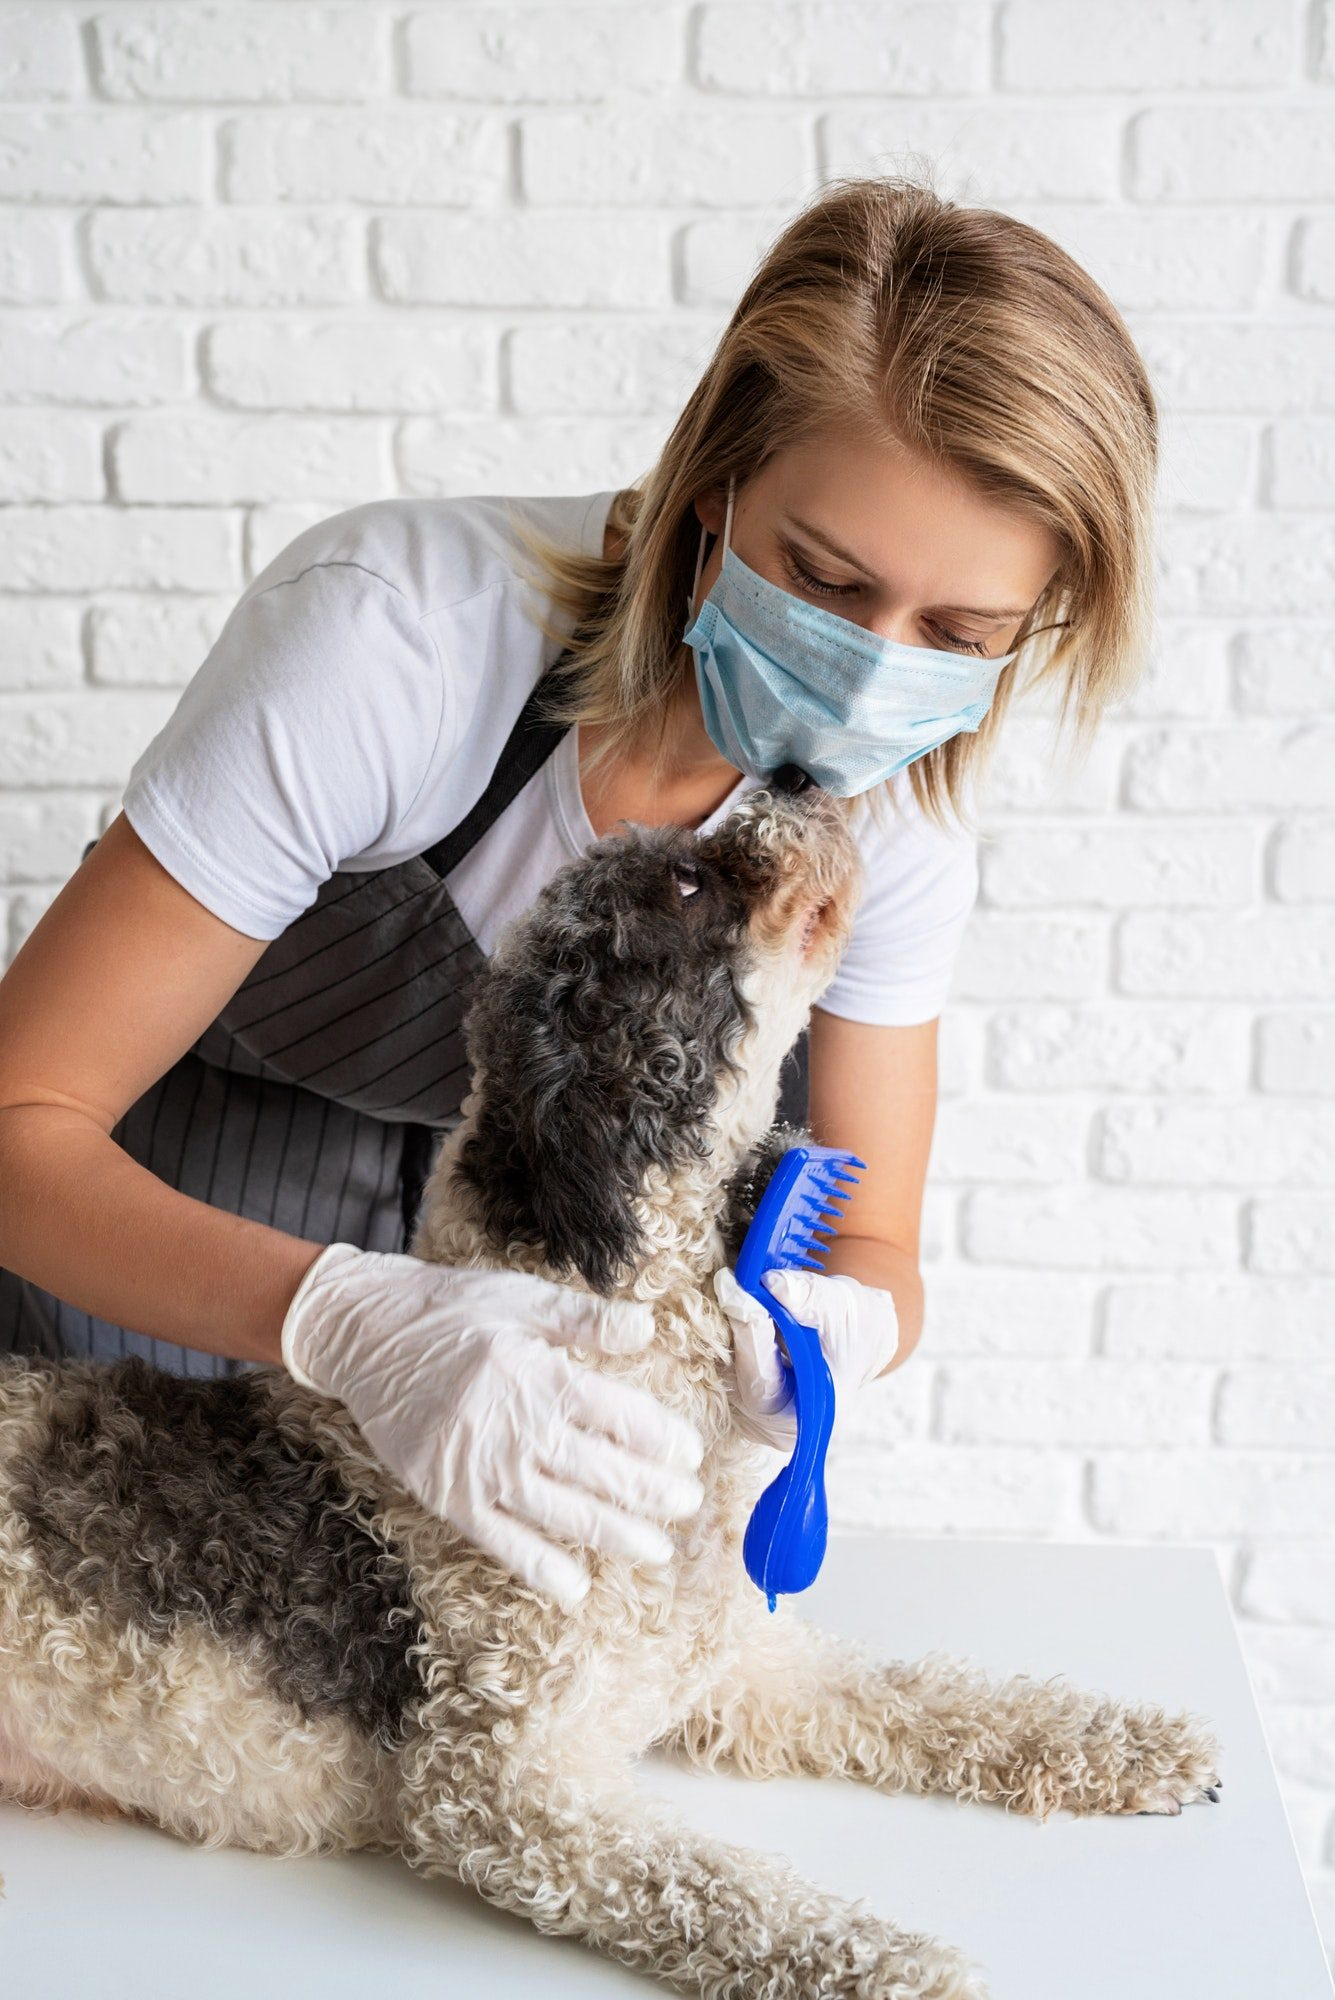 A young caucasian blond woman in a mask combing a dog